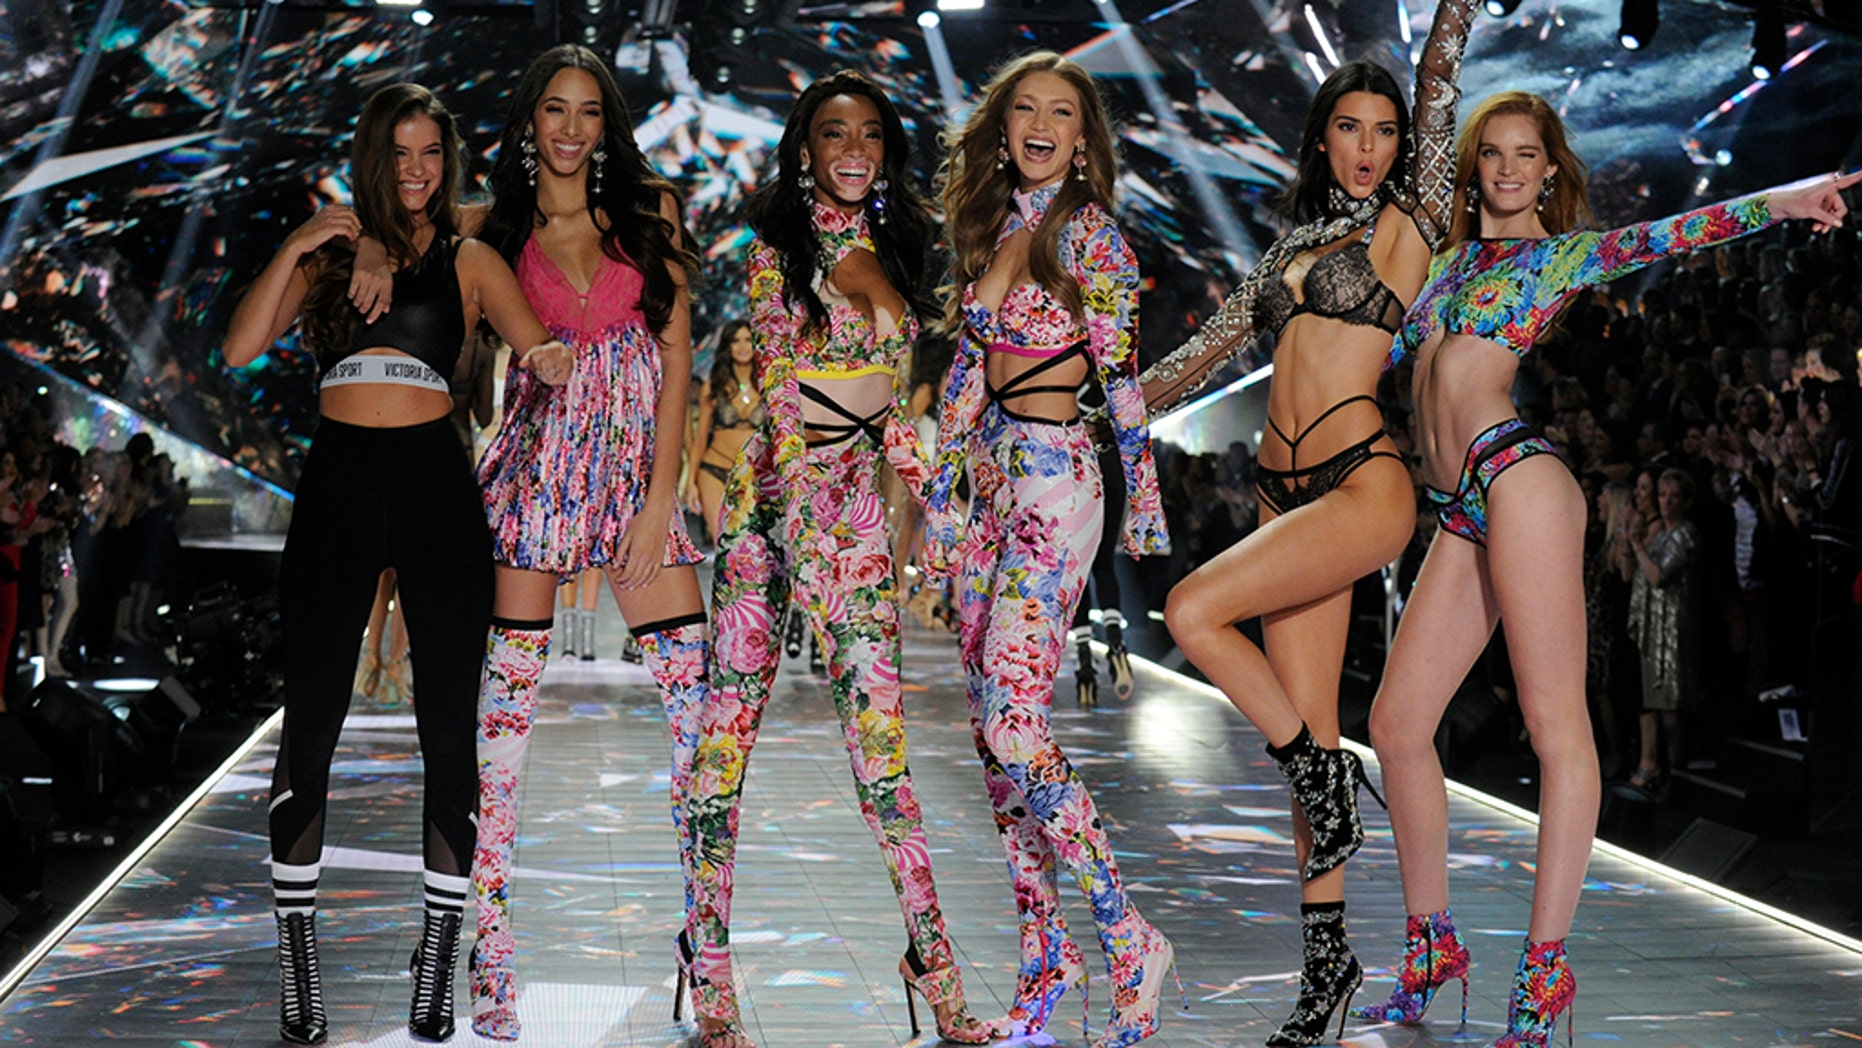 Victoria's Secret's Angels take to the runway for the 2018 Victoria's Secret Holiday Special.